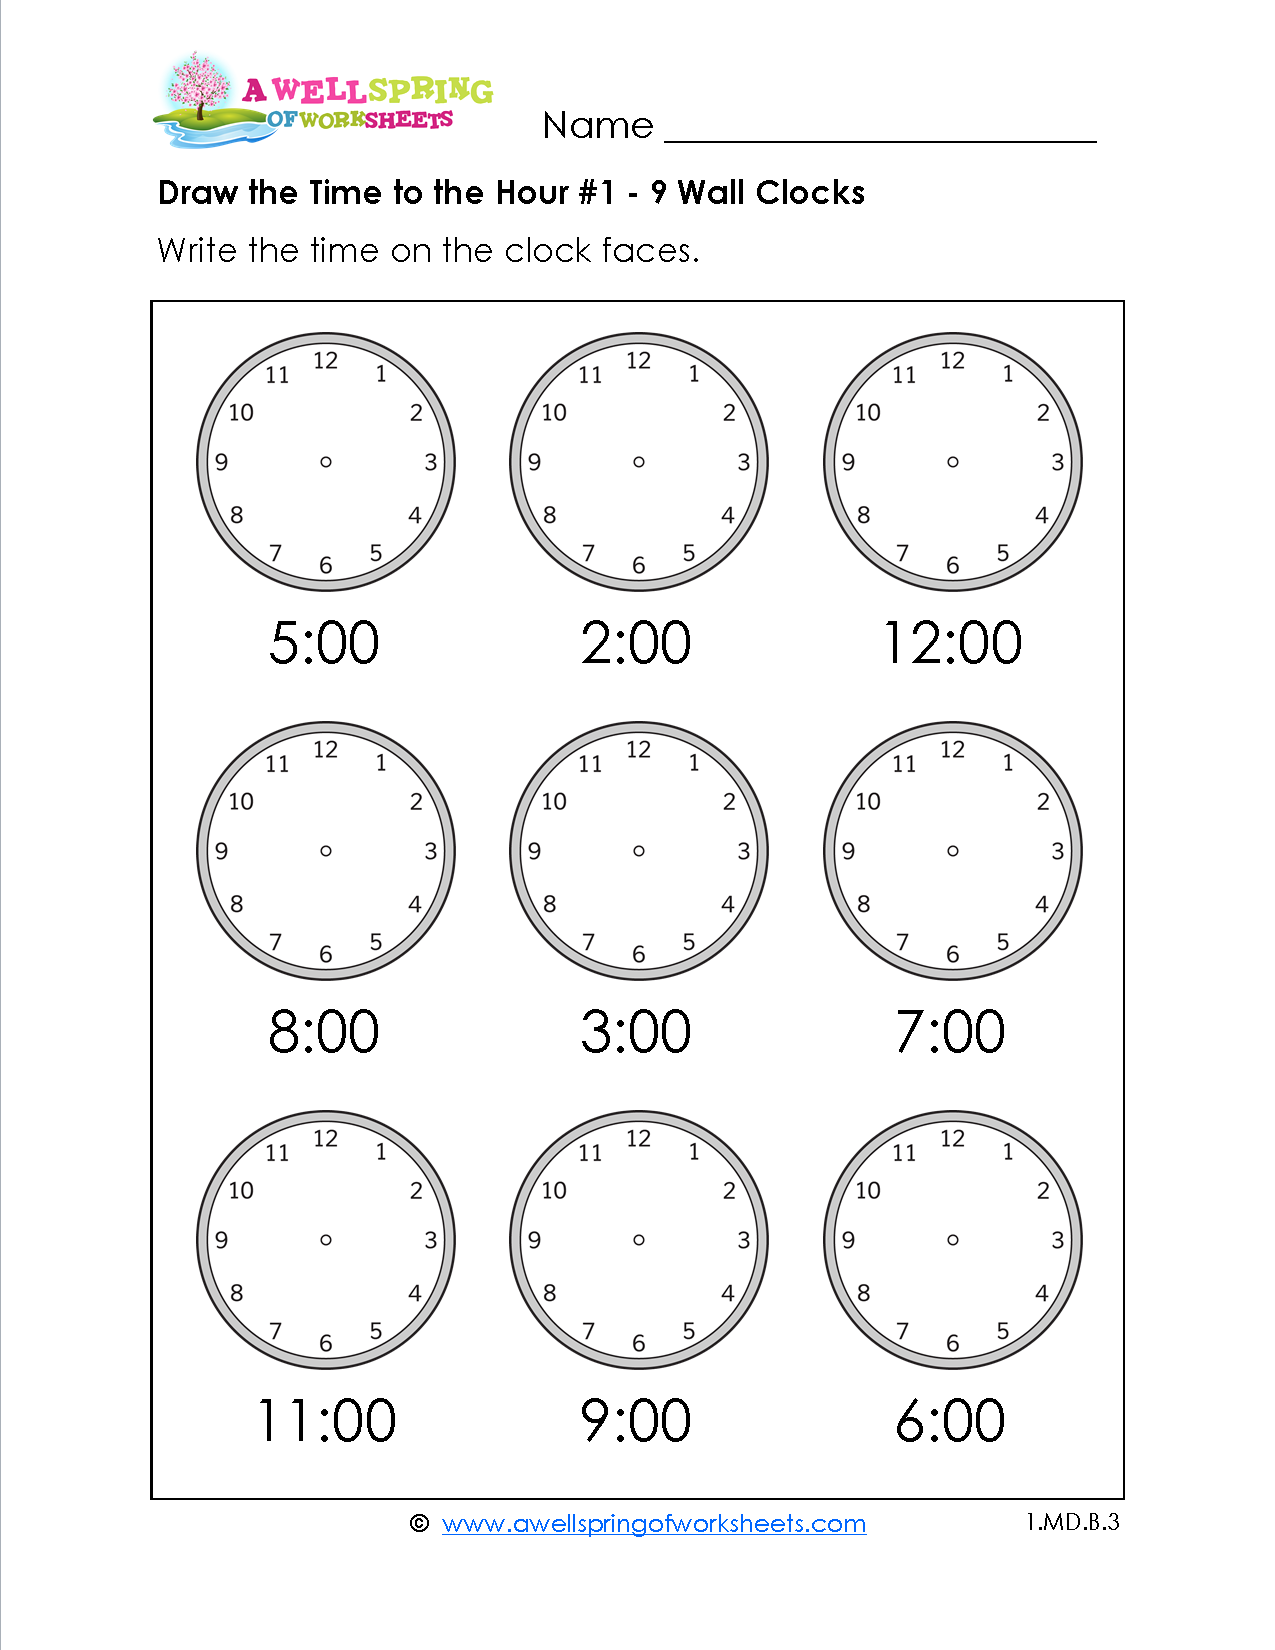 Grade level worksheets teaching world pinterest worksheets draw the time to the hour worksheets for first grade kids draw the hour and minute hands on each clock click through and see the 9 worksheets with 9 12 ibookread ePUb